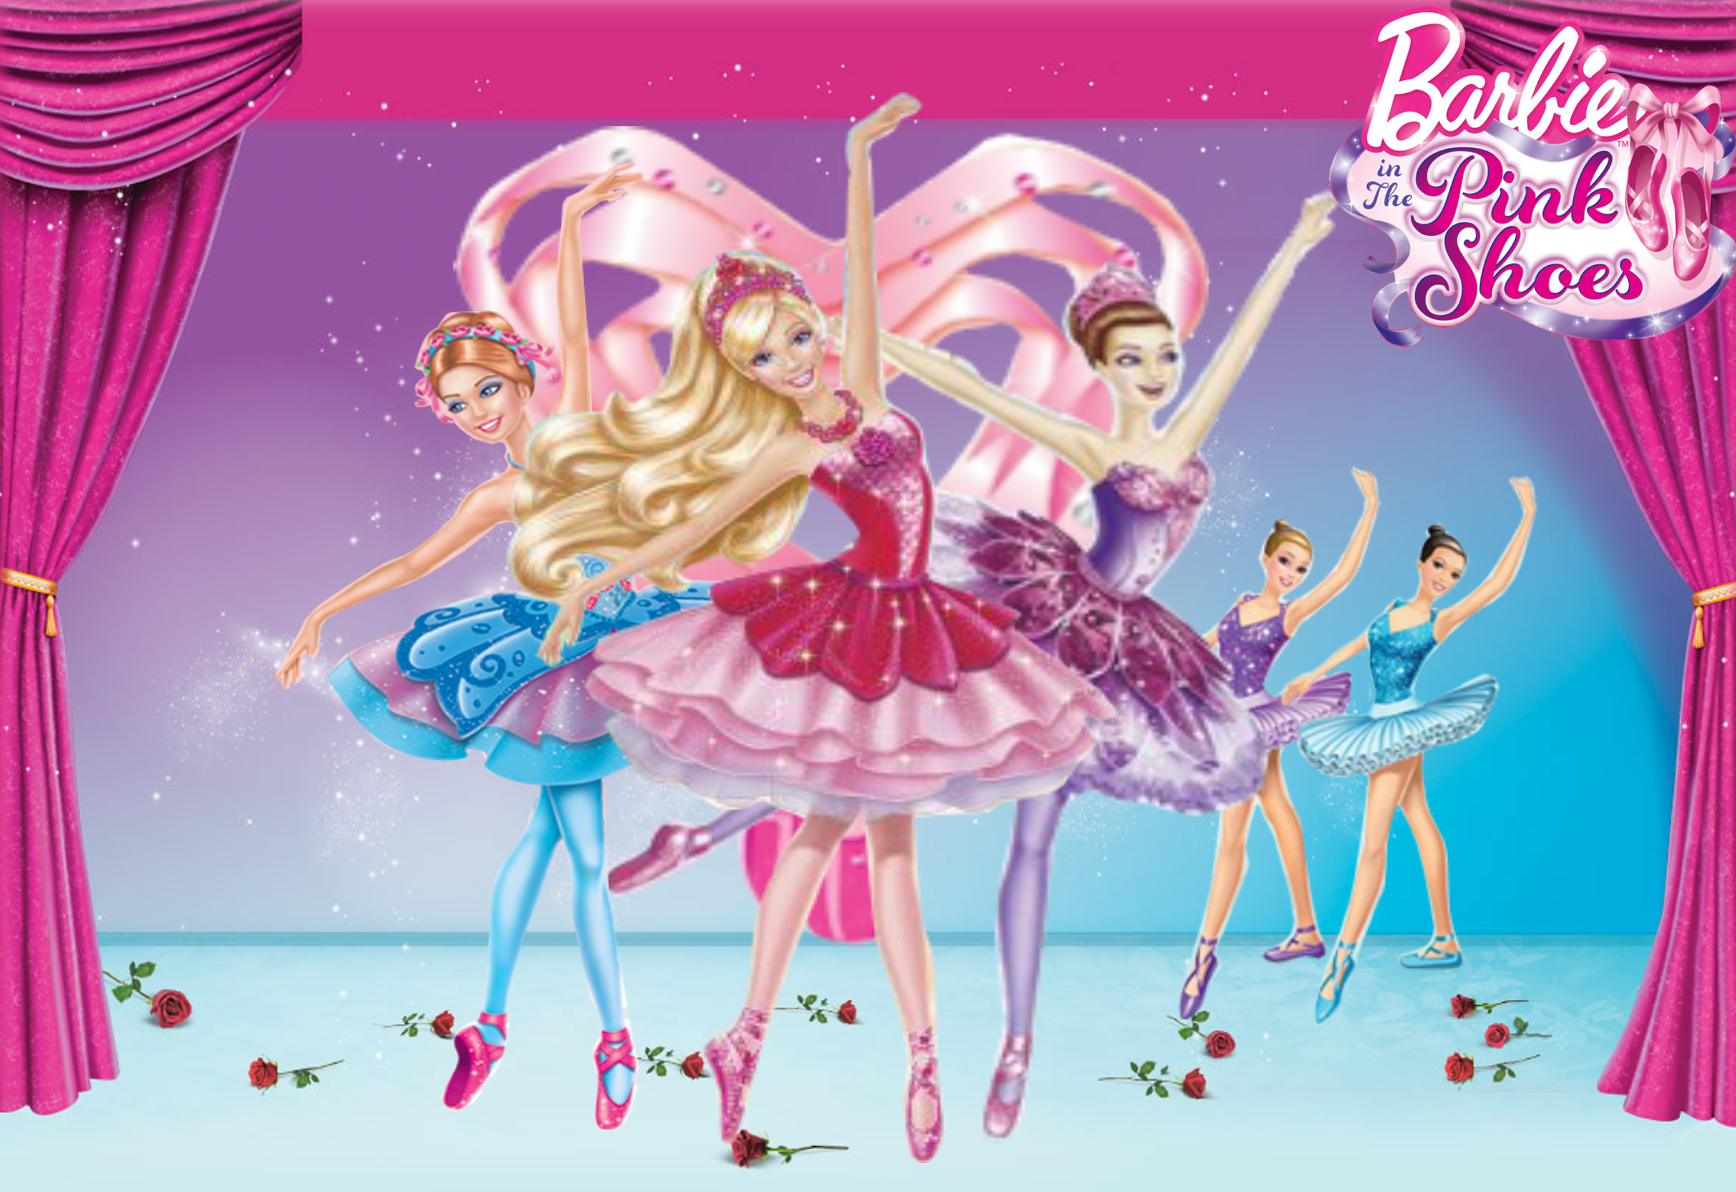 Popular Wallpaper Butterfly Barbie - barbie_in_the_pink_shoes_wallpaper_by_ravenvillanuevat2p-d64neh0  Image_25771.png